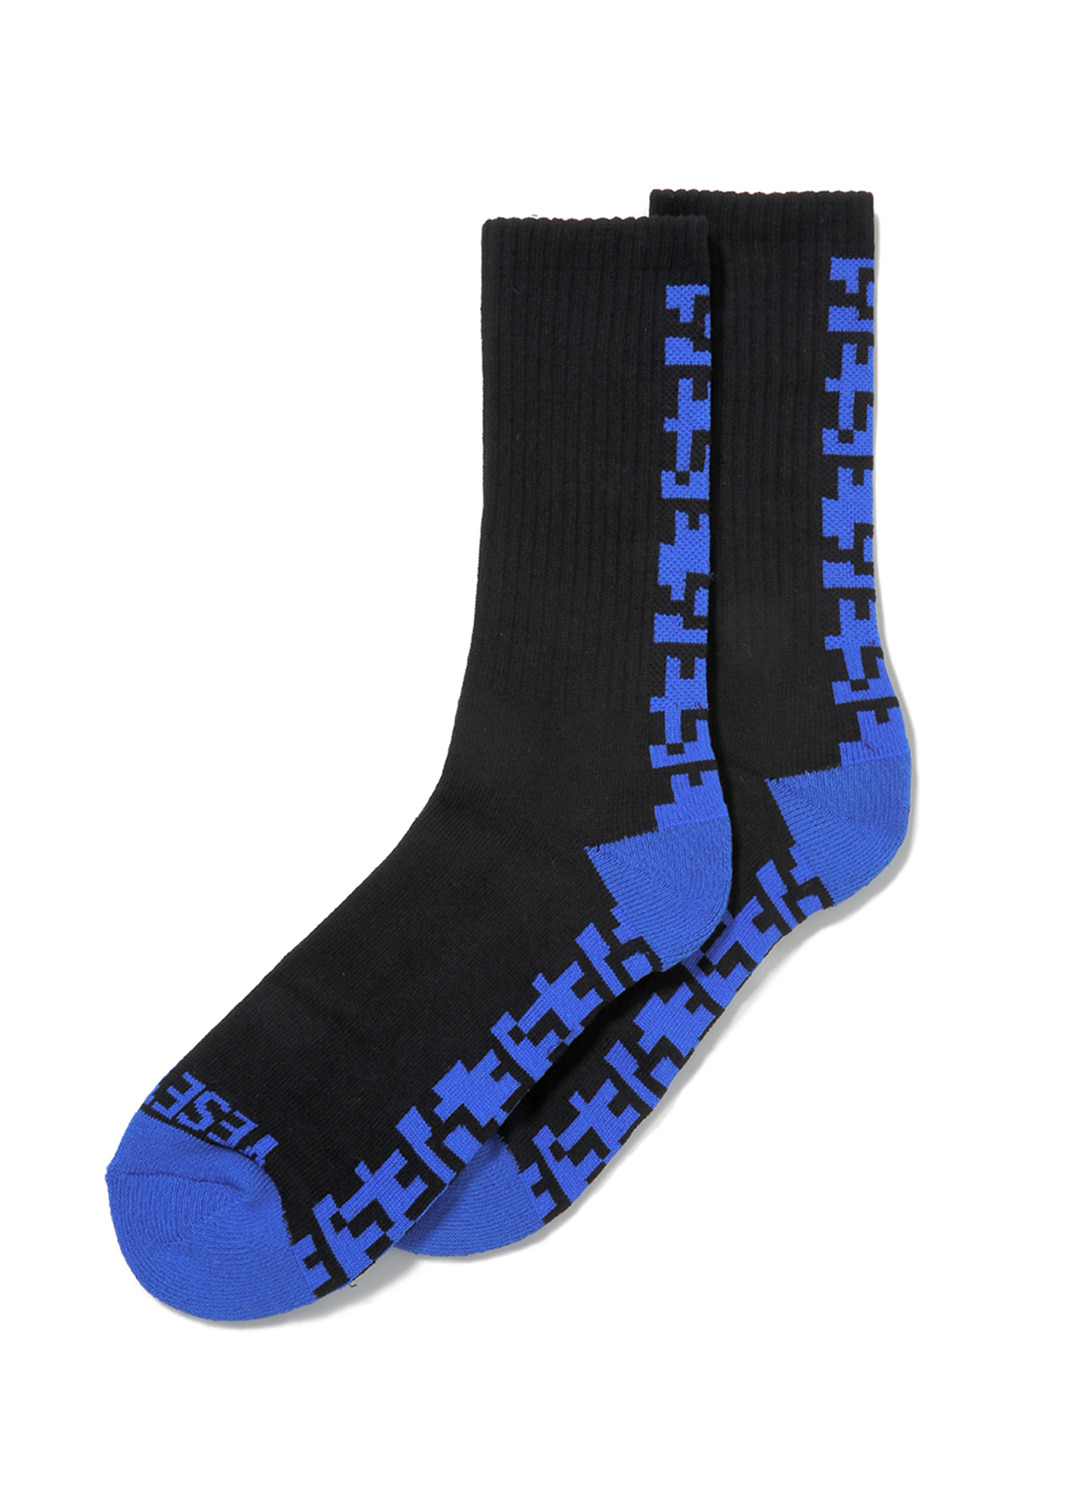 Y.E.S Sports Socks Black